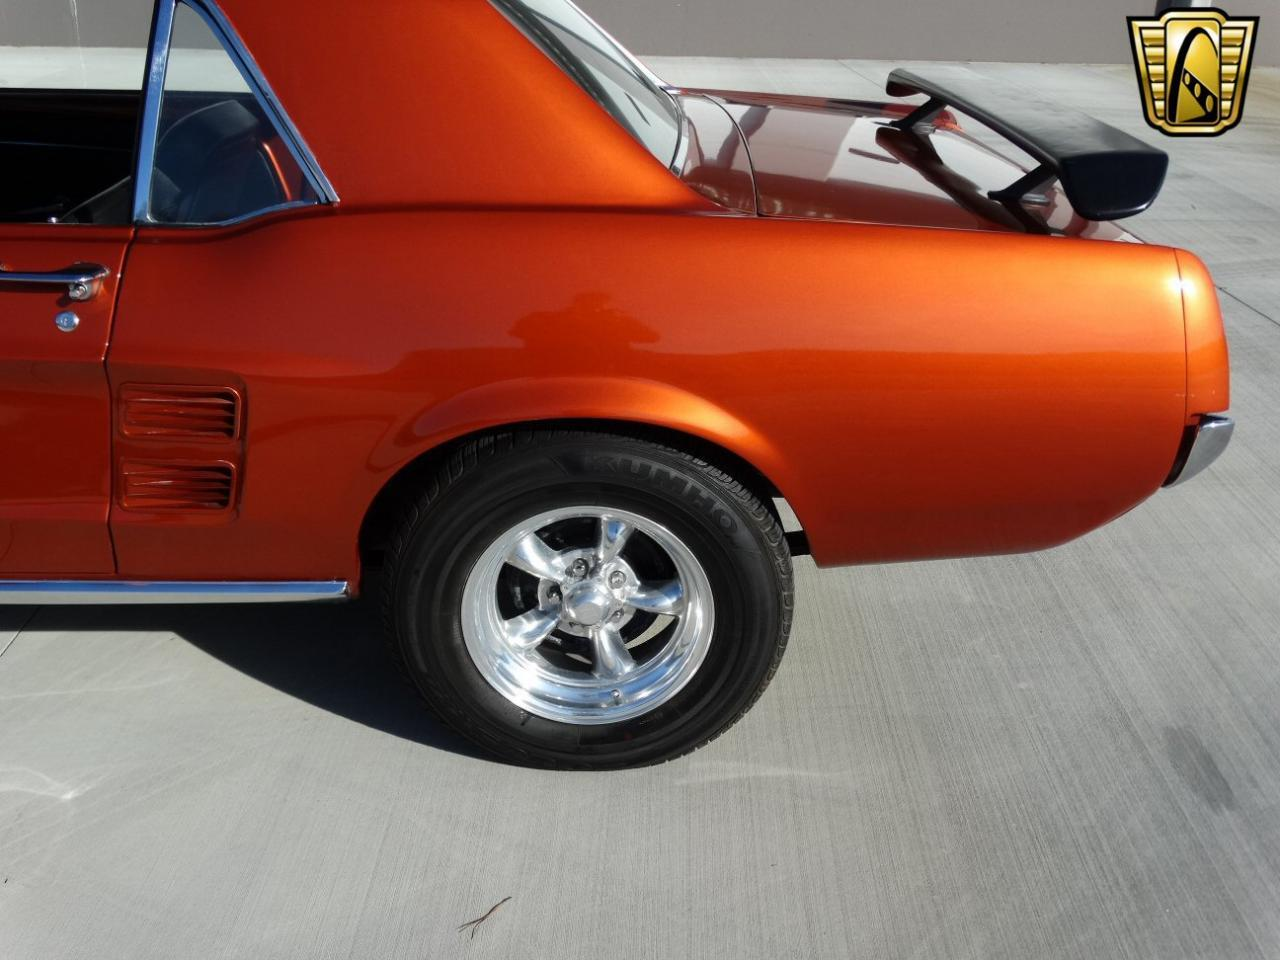 Large Picture of 1967 Mustang located in Georgia - $19,995.00 Offered by Gateway Classic Cars - Atlanta - KF5L